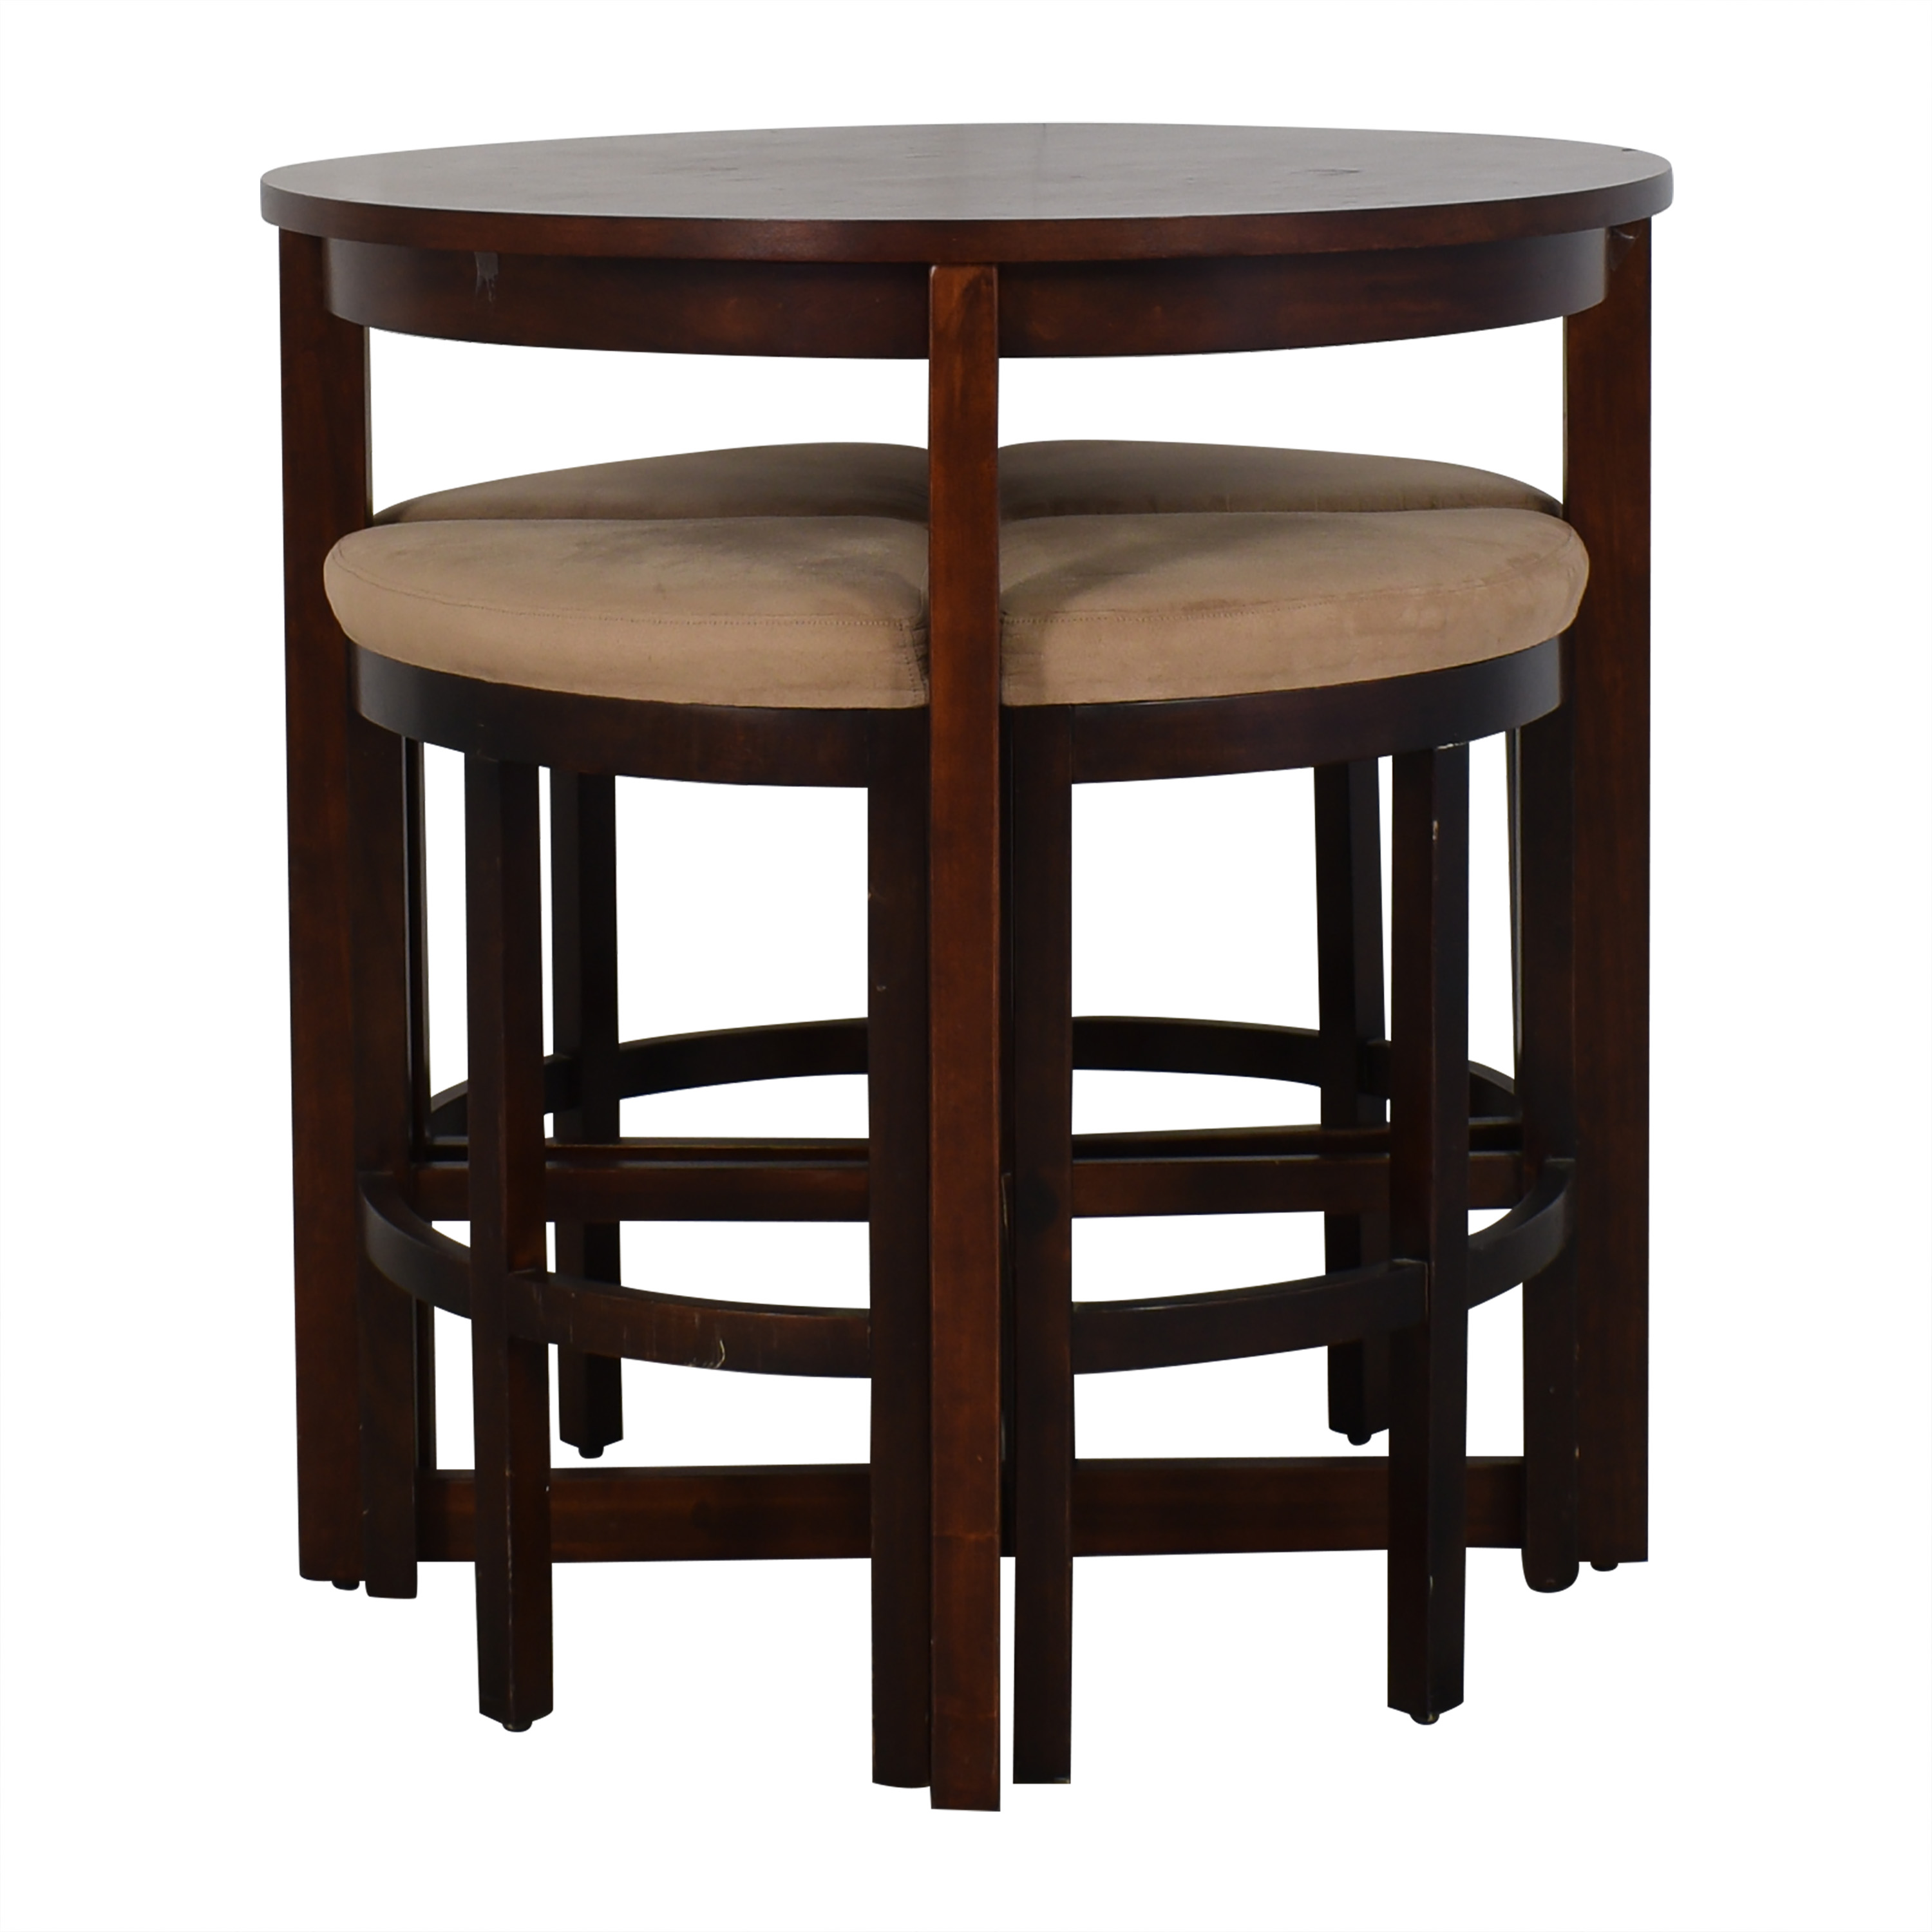 Raymour & Flanigan Raymour & Flanigan Round Table and Stools for sale